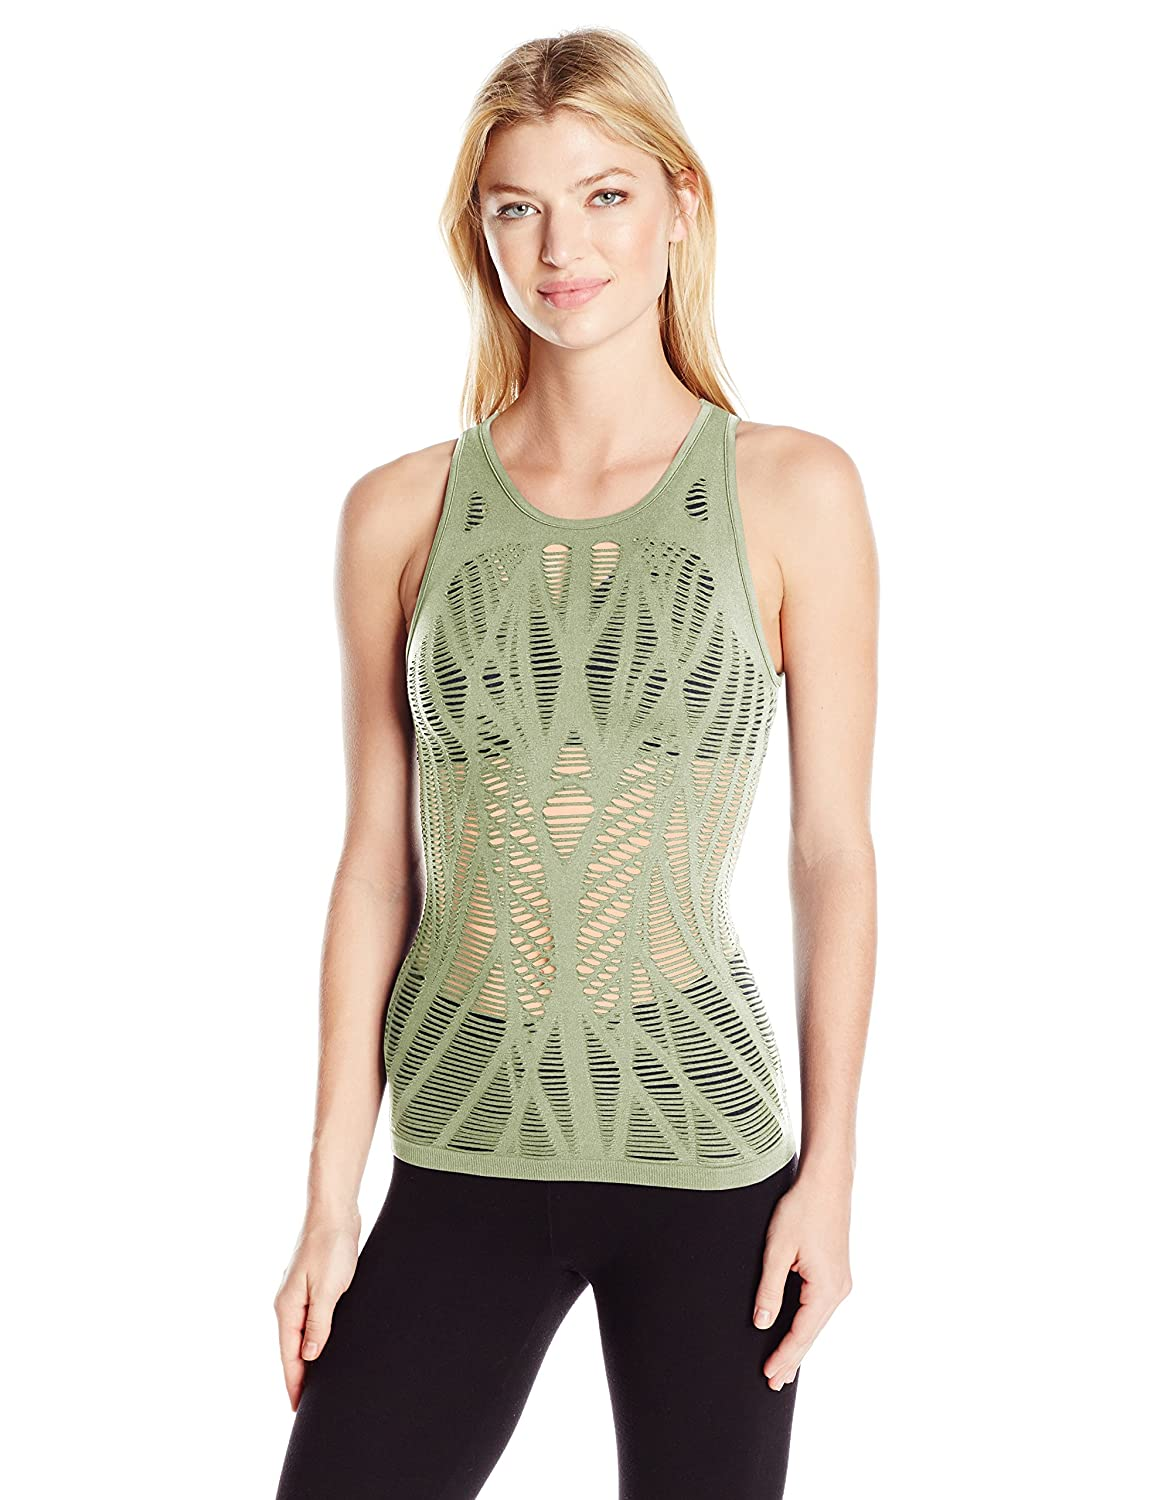 Icicle Alo Yoga Womens Vixen Fitted Muscle Tank Shirt